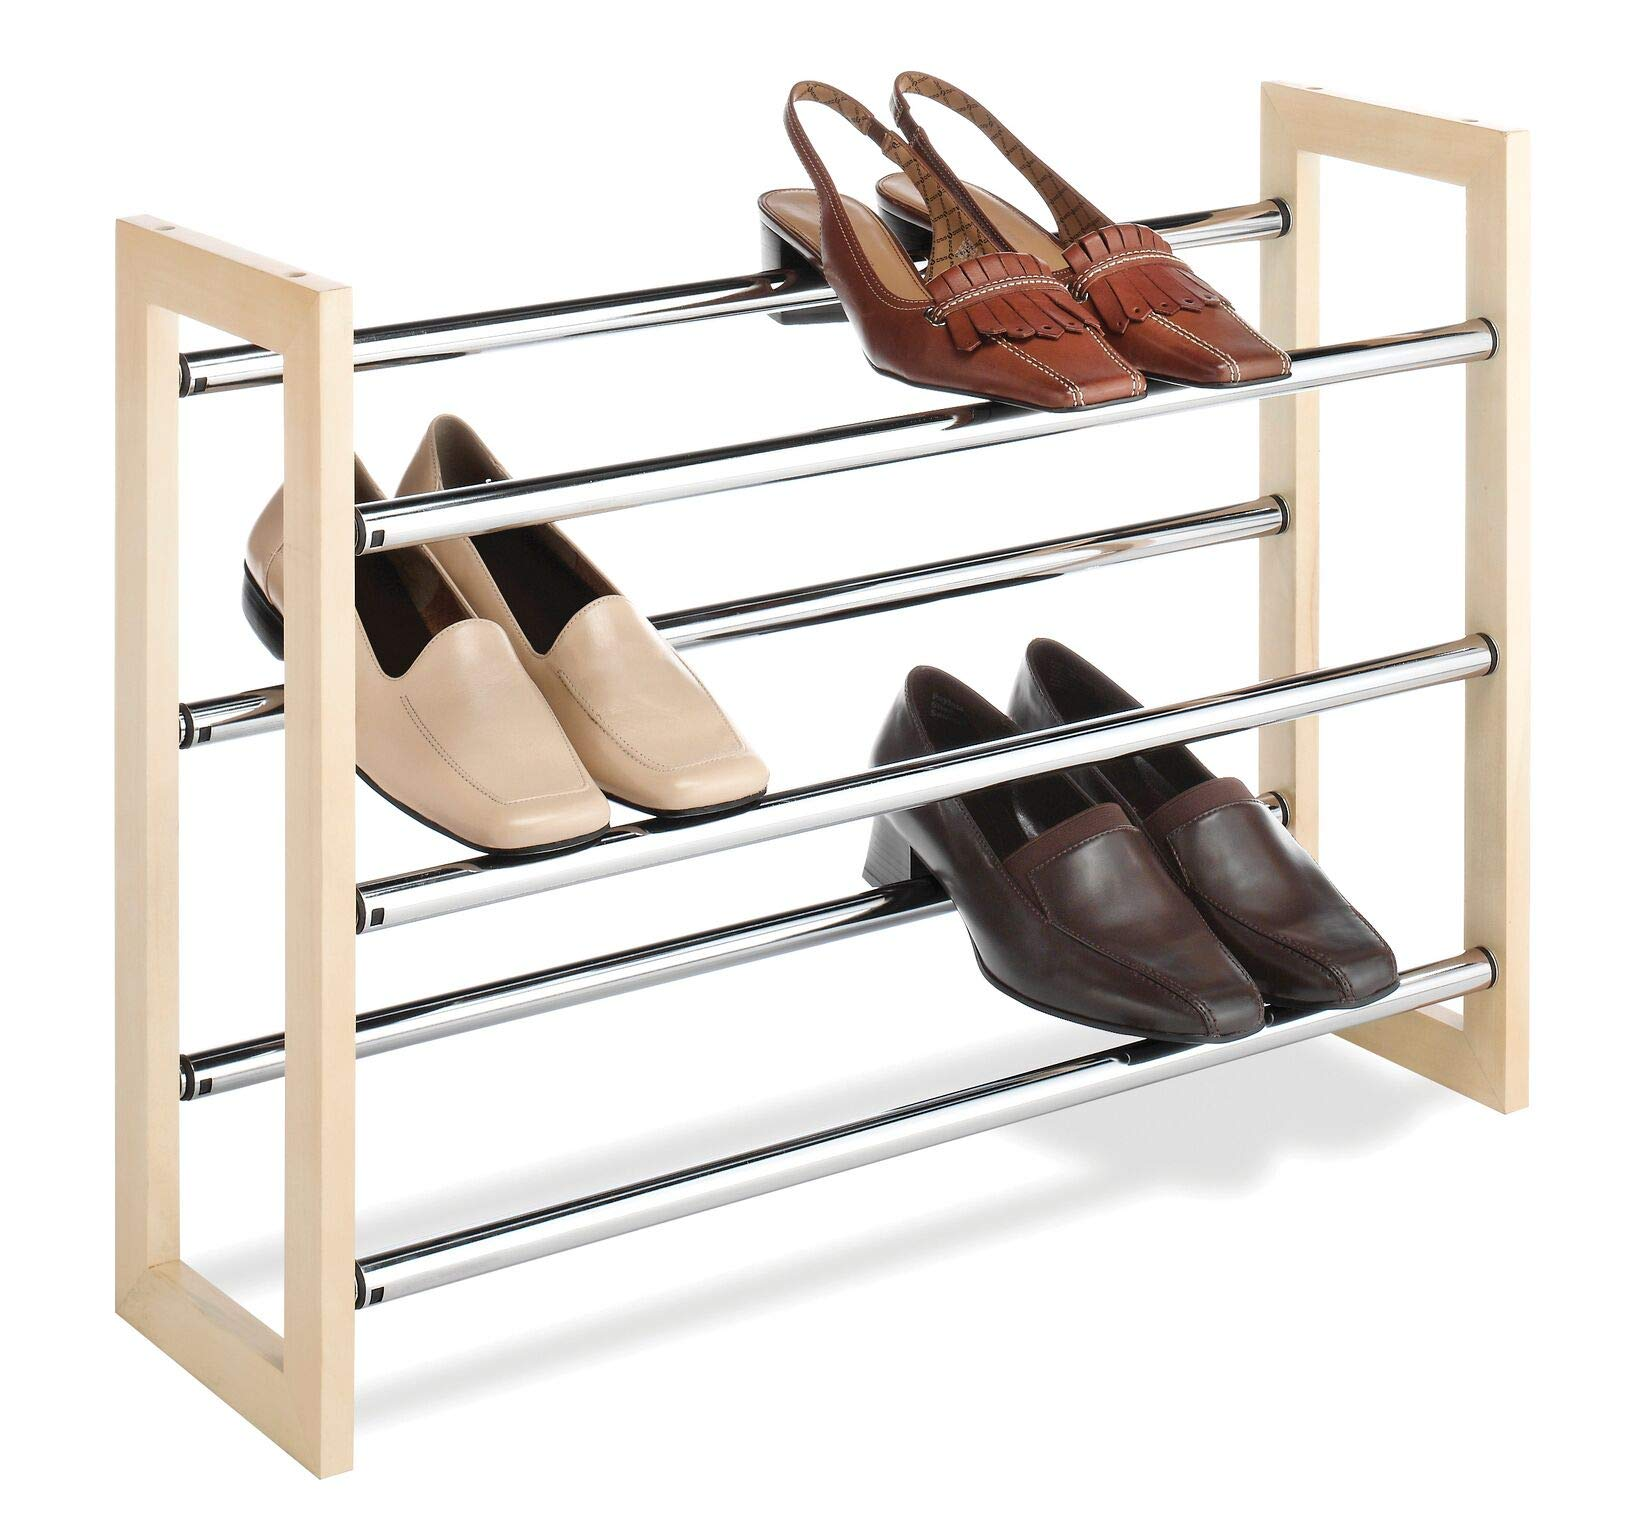 Whitmor 3 Tier Expandable Shoe Rack -Stackable - Natural Wood and Chrome by Whitmor